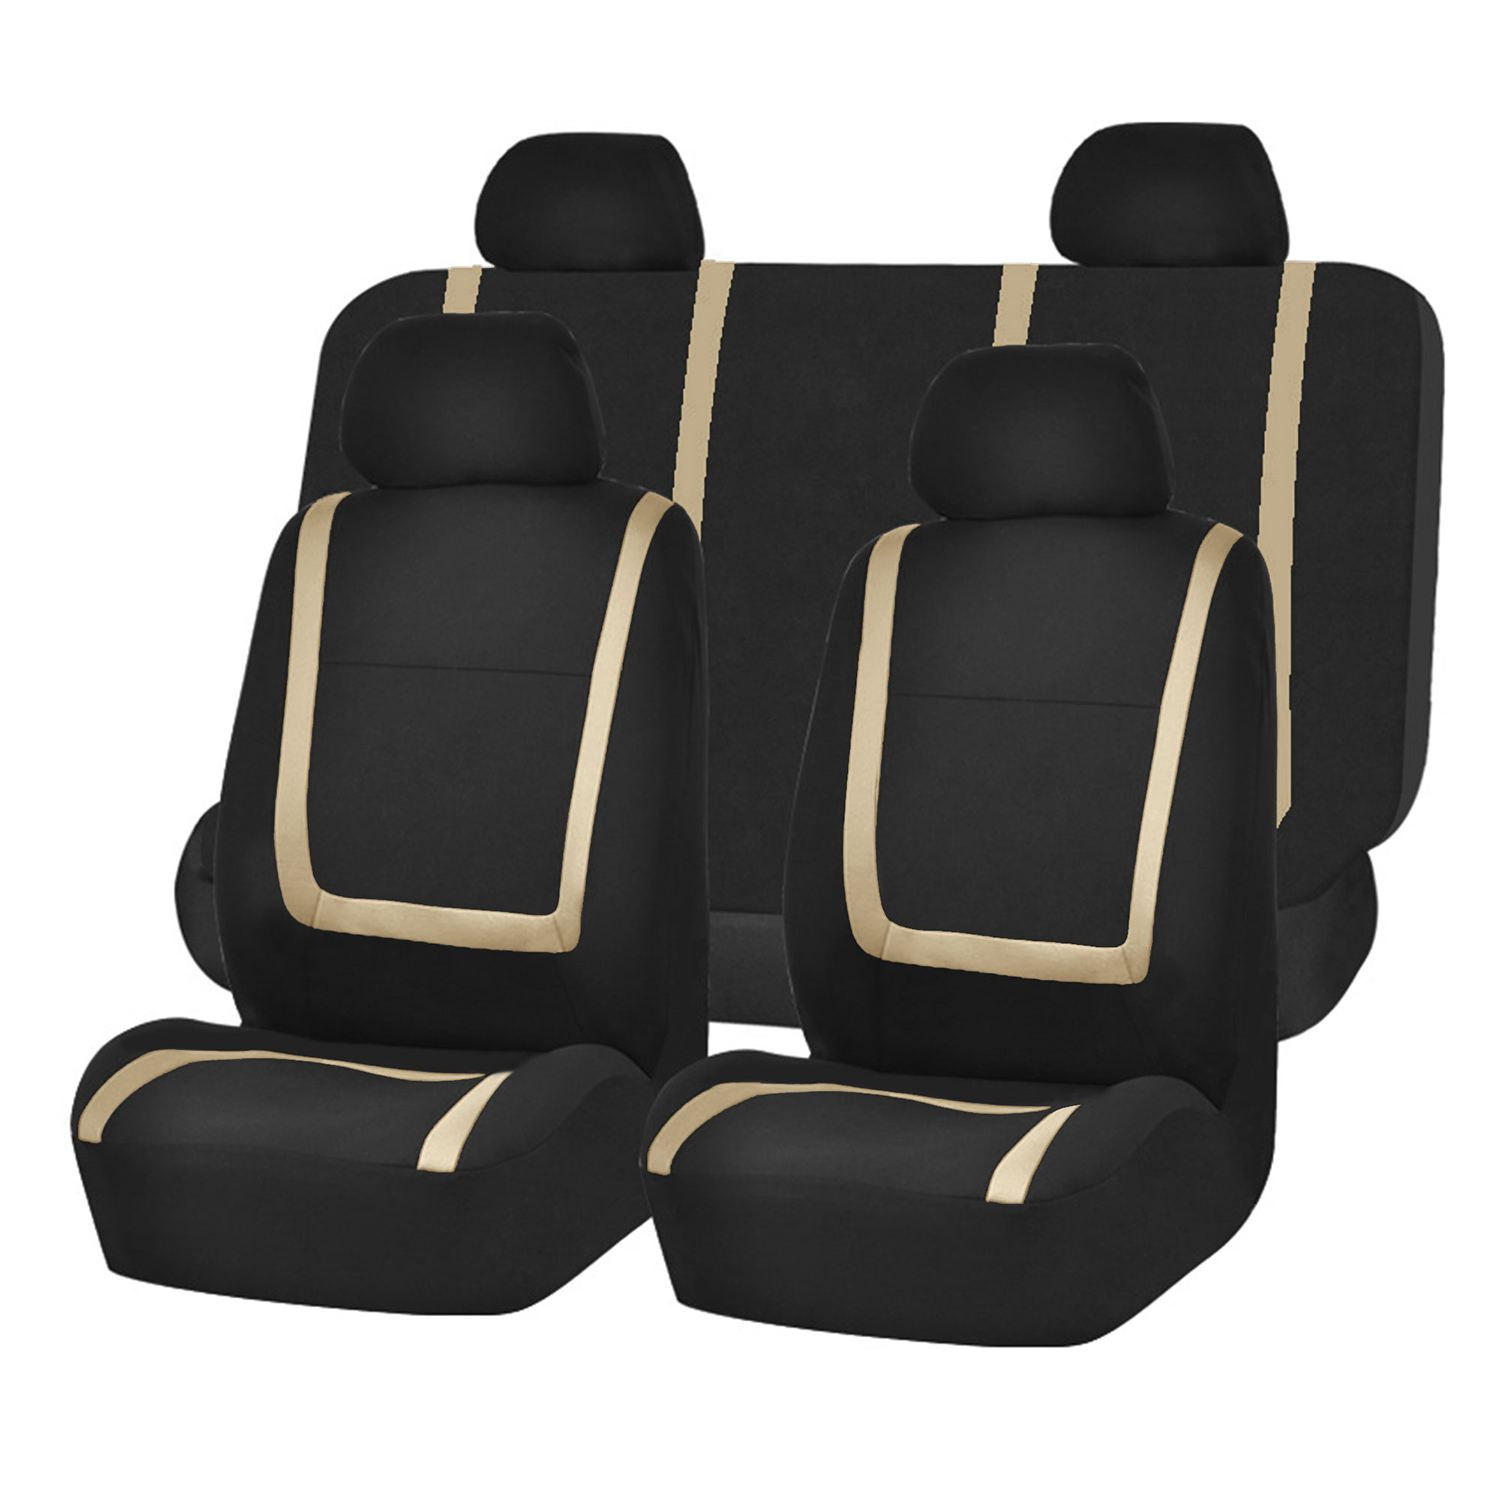 AUTO -Auto Seat Covers for Car Sedan Truck Van Universal Seat Covers Color: Beige